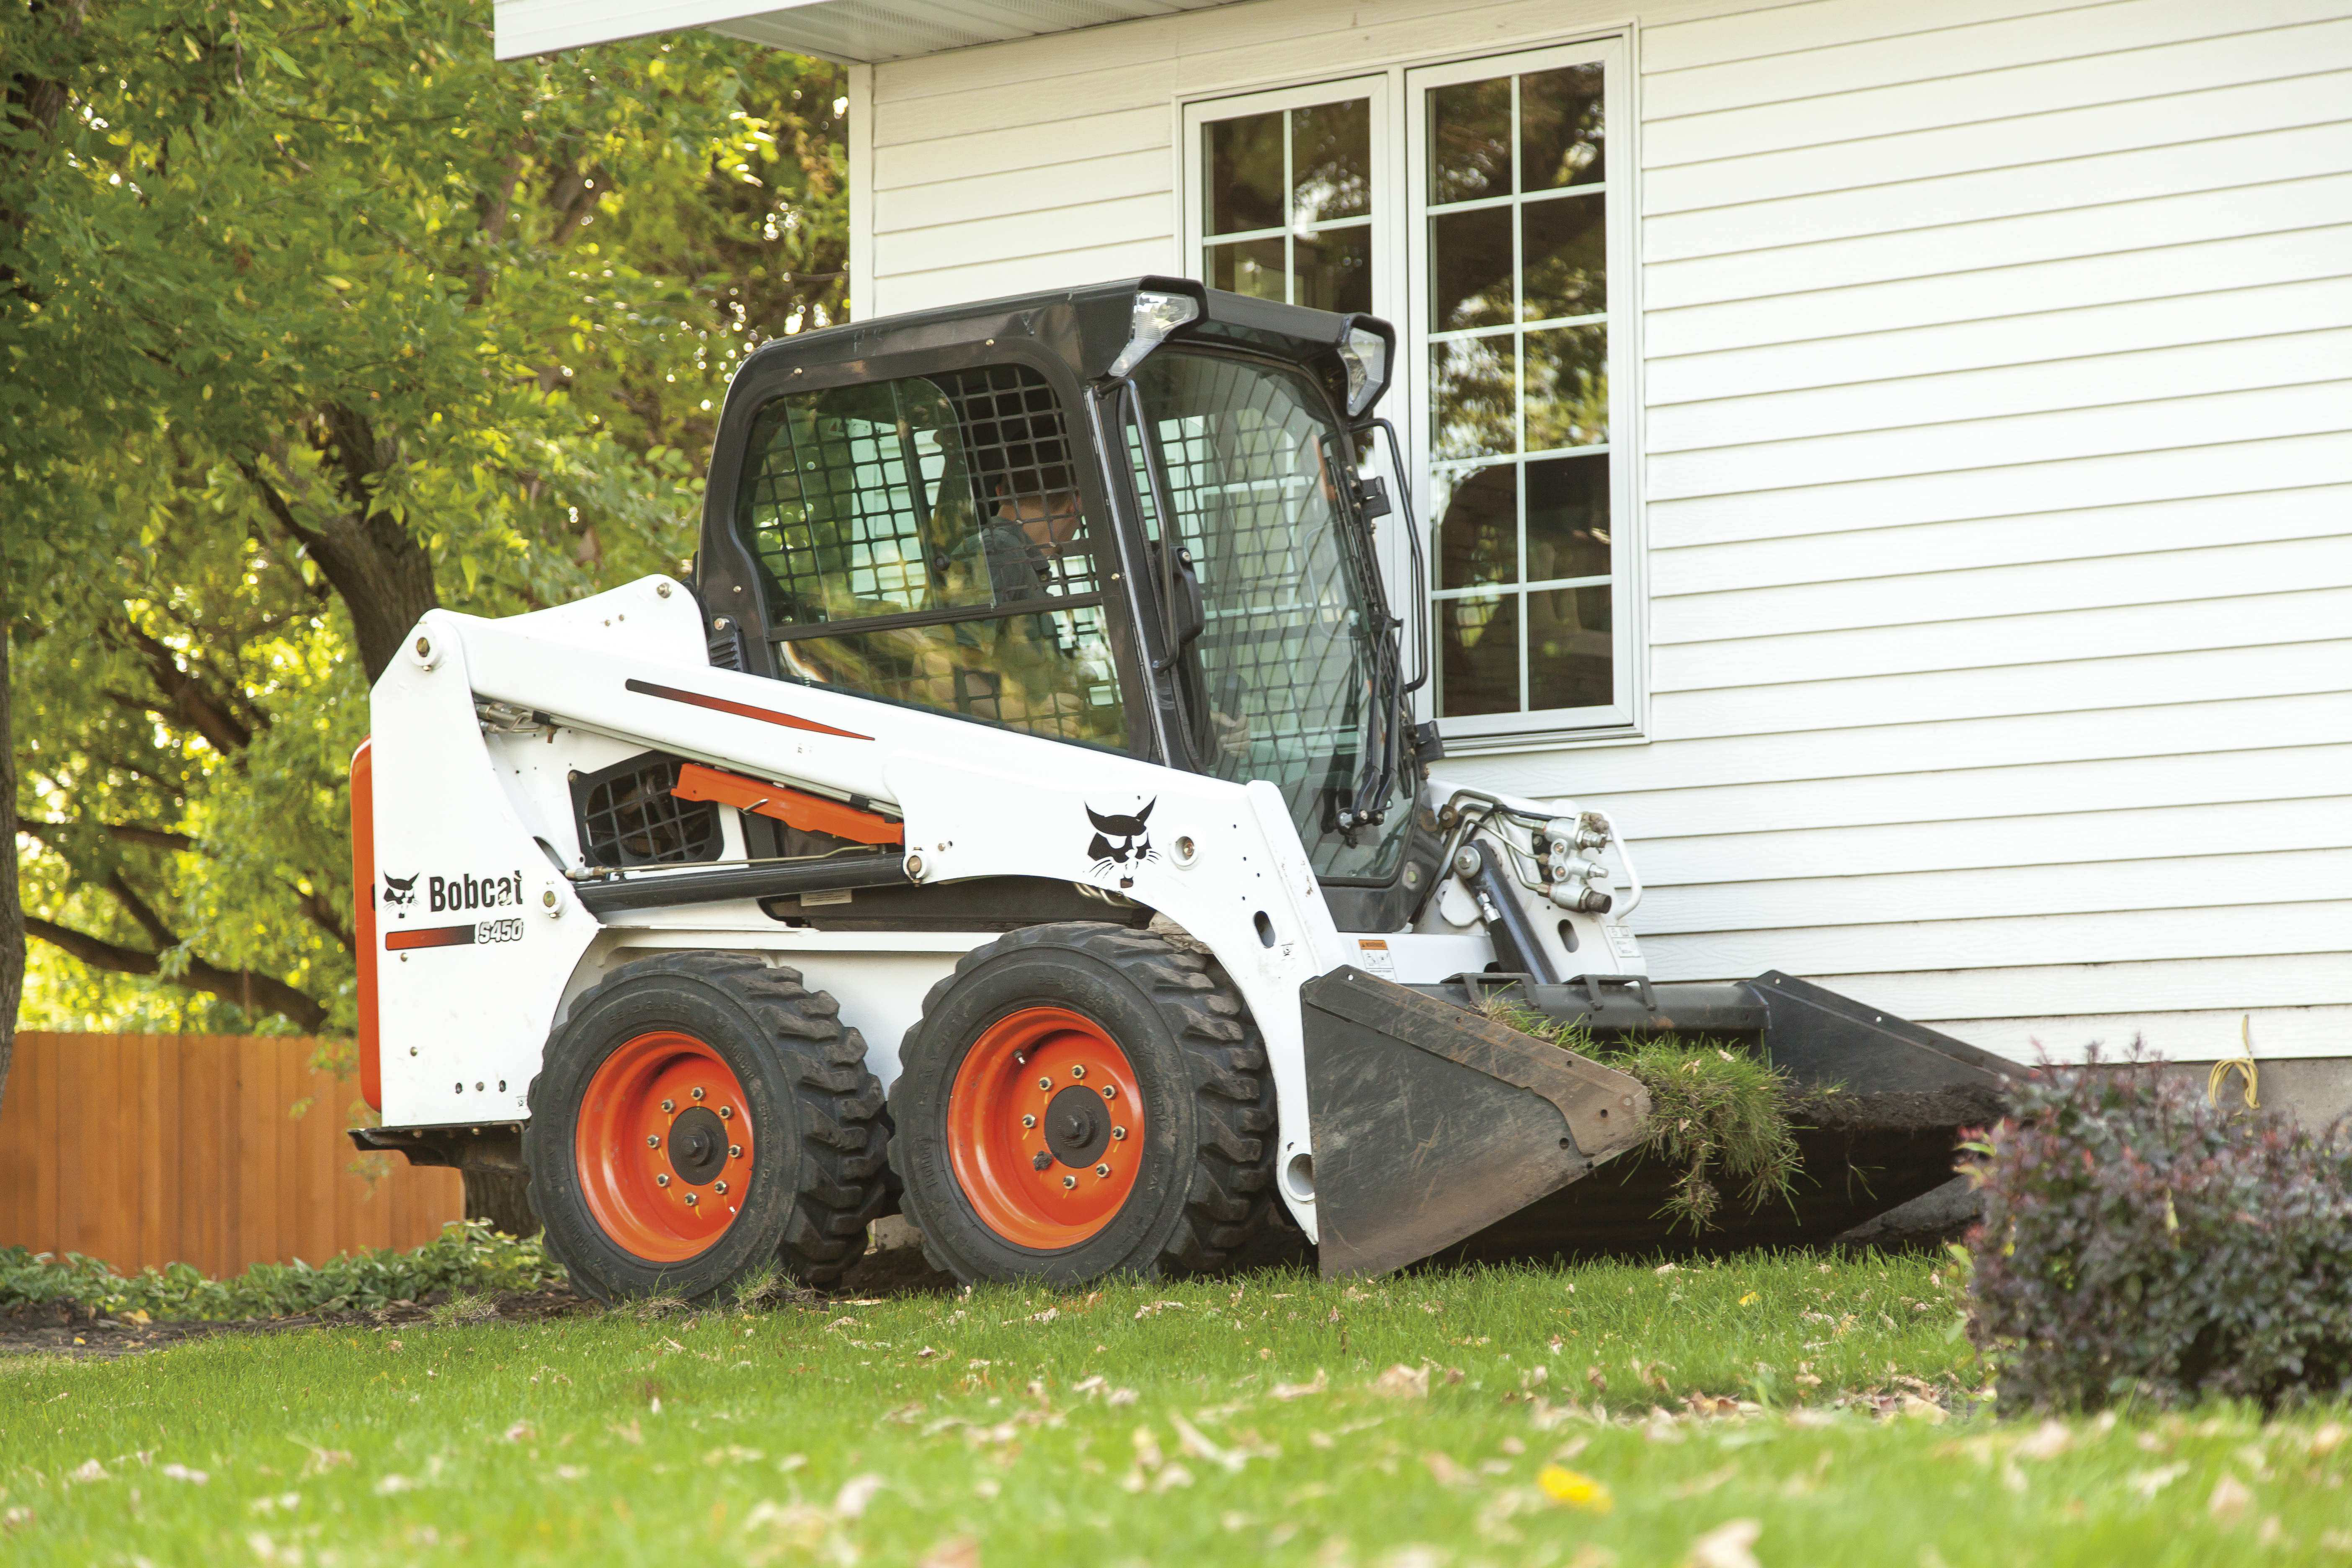 pontiac 3 8 engine diagram reduced engine bobcat s s450 skid steer t450 ctl designed to work on